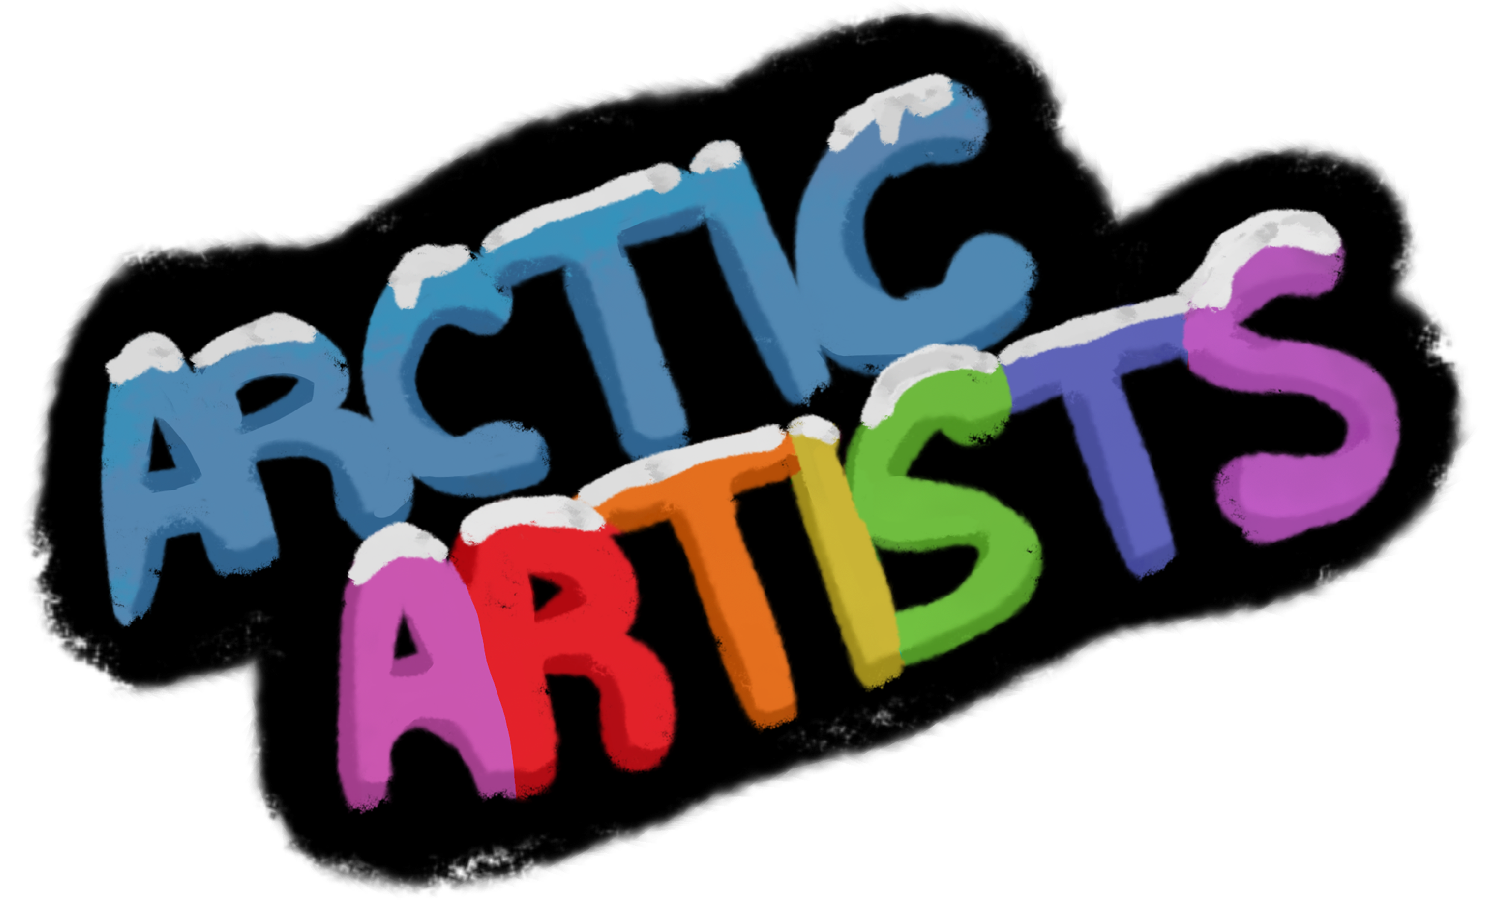 ARCTIC ARTISTS